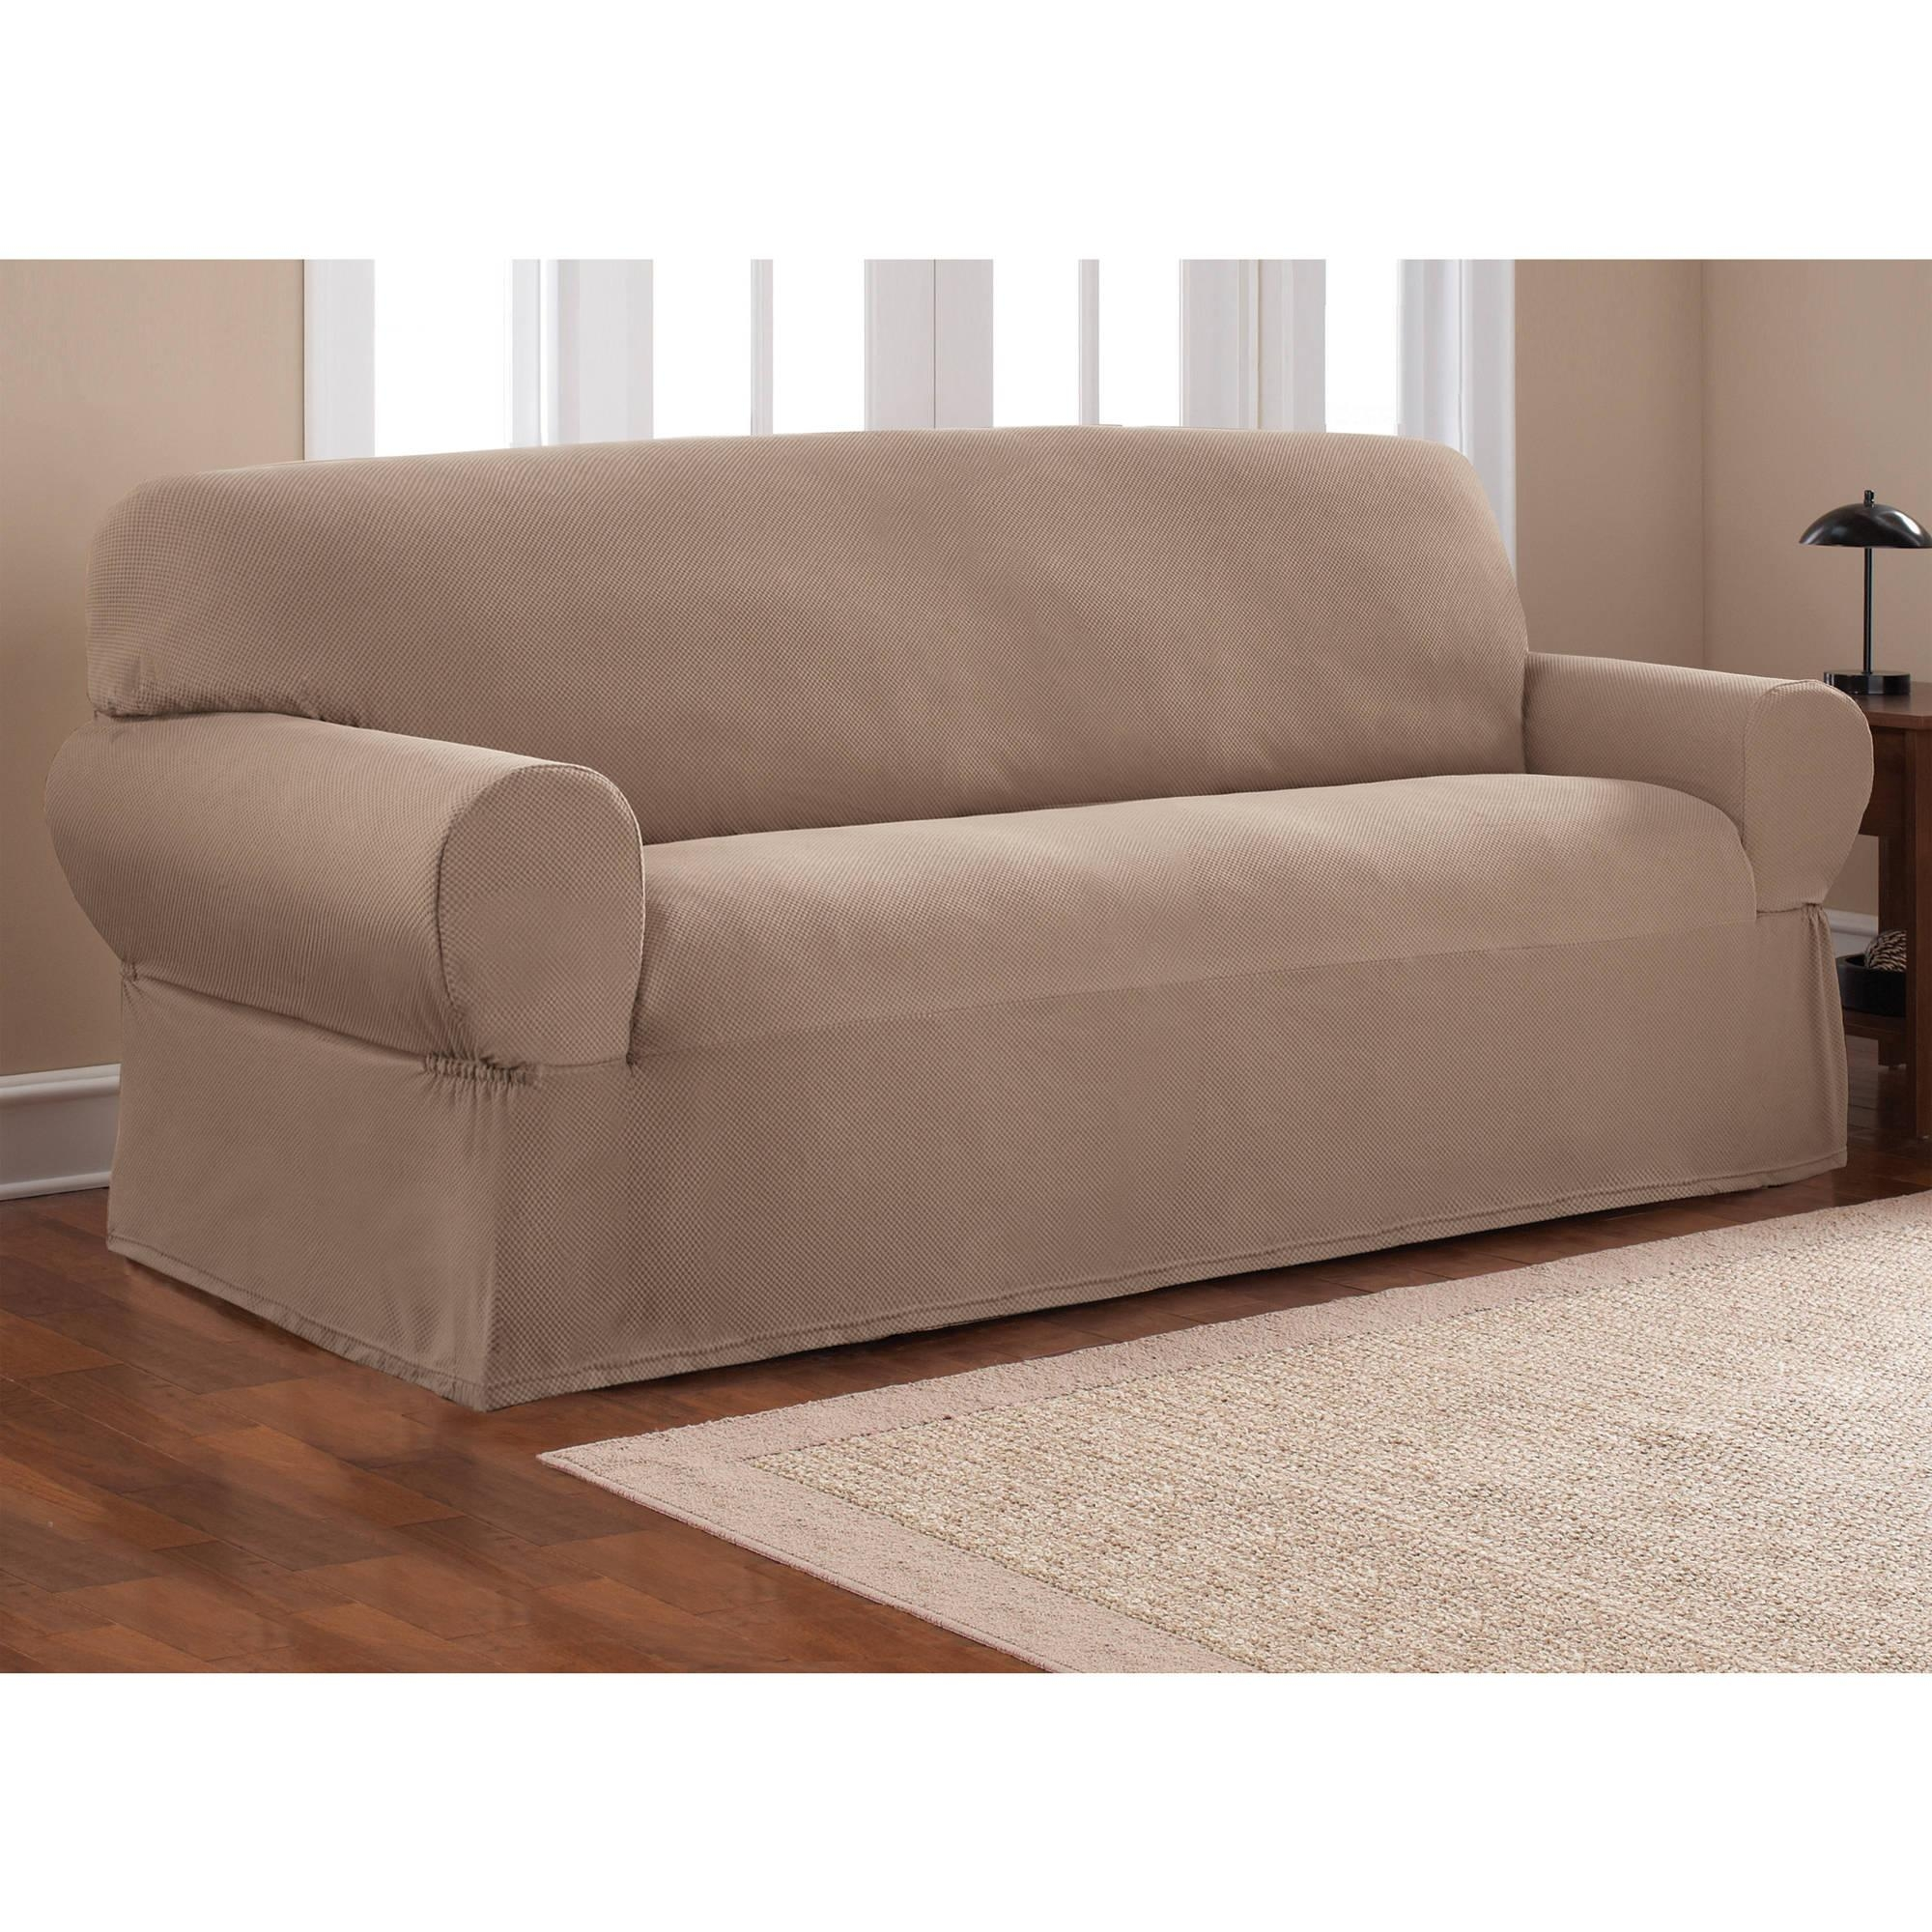 Sofas : Amazing T Cushion Loveseat Slipcover 3 Piece T Cushion Throughout 2 Piece Sofa Covers (Image 17 of 27)